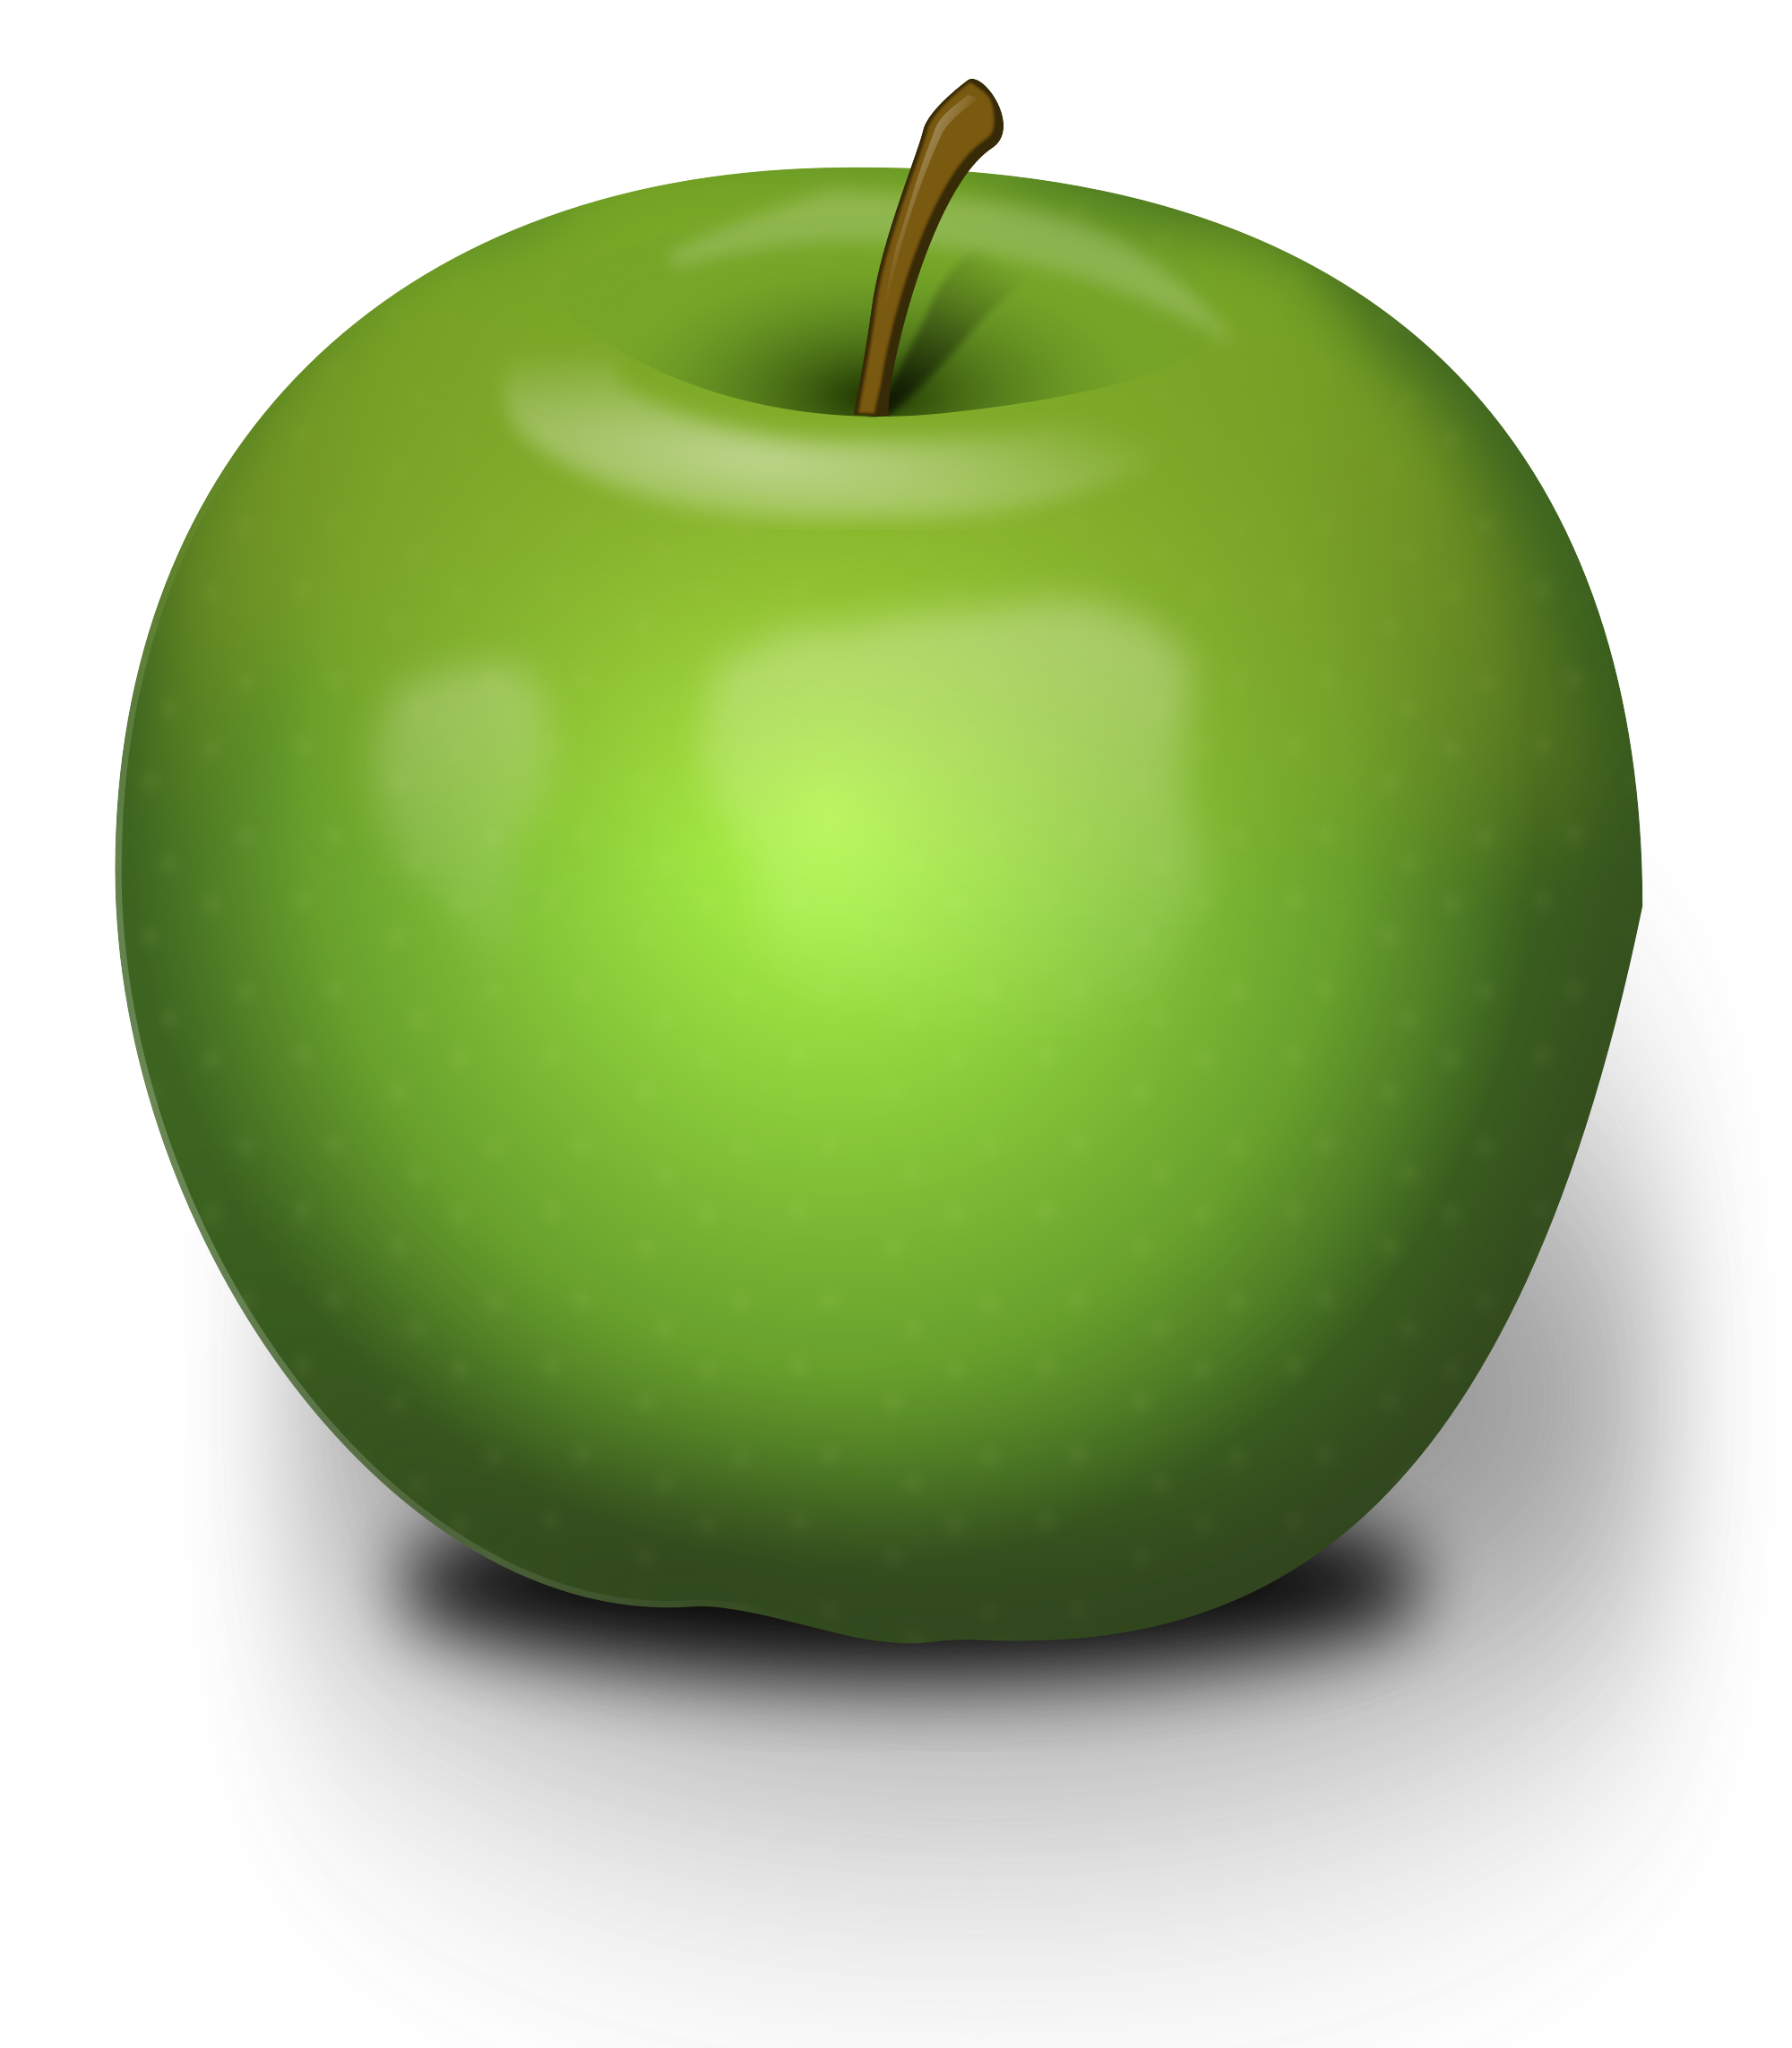 Now you can download Apple Icon PNG